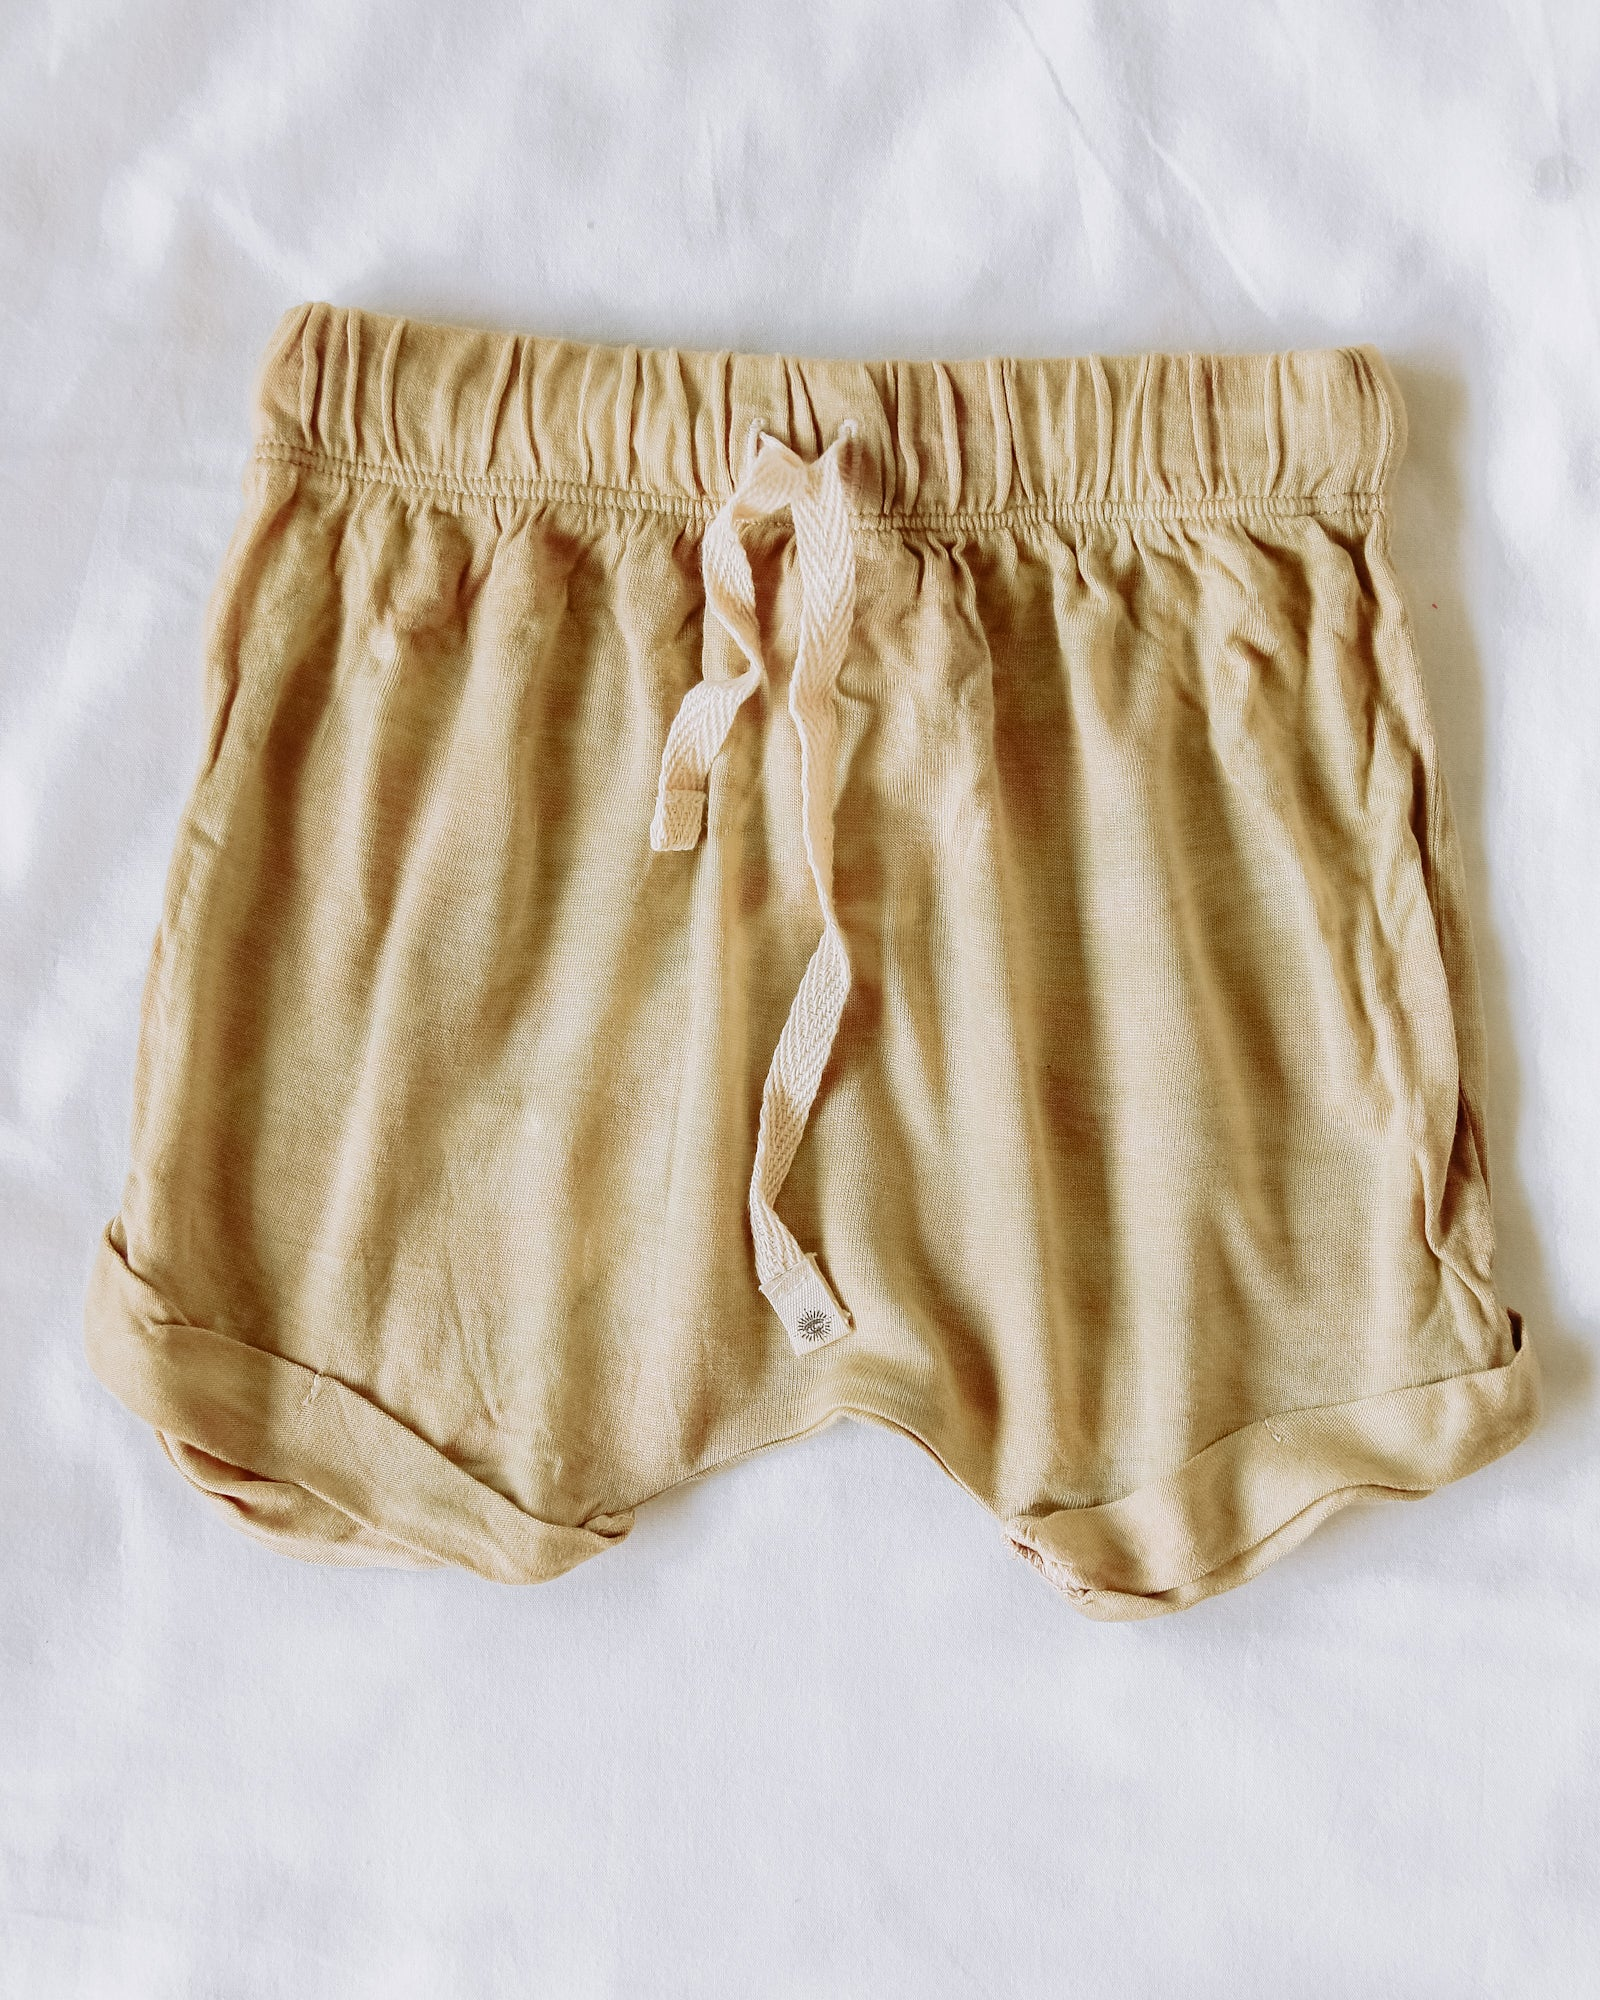 Honey Organic Bamboo Baby Shorts Tie-Dye